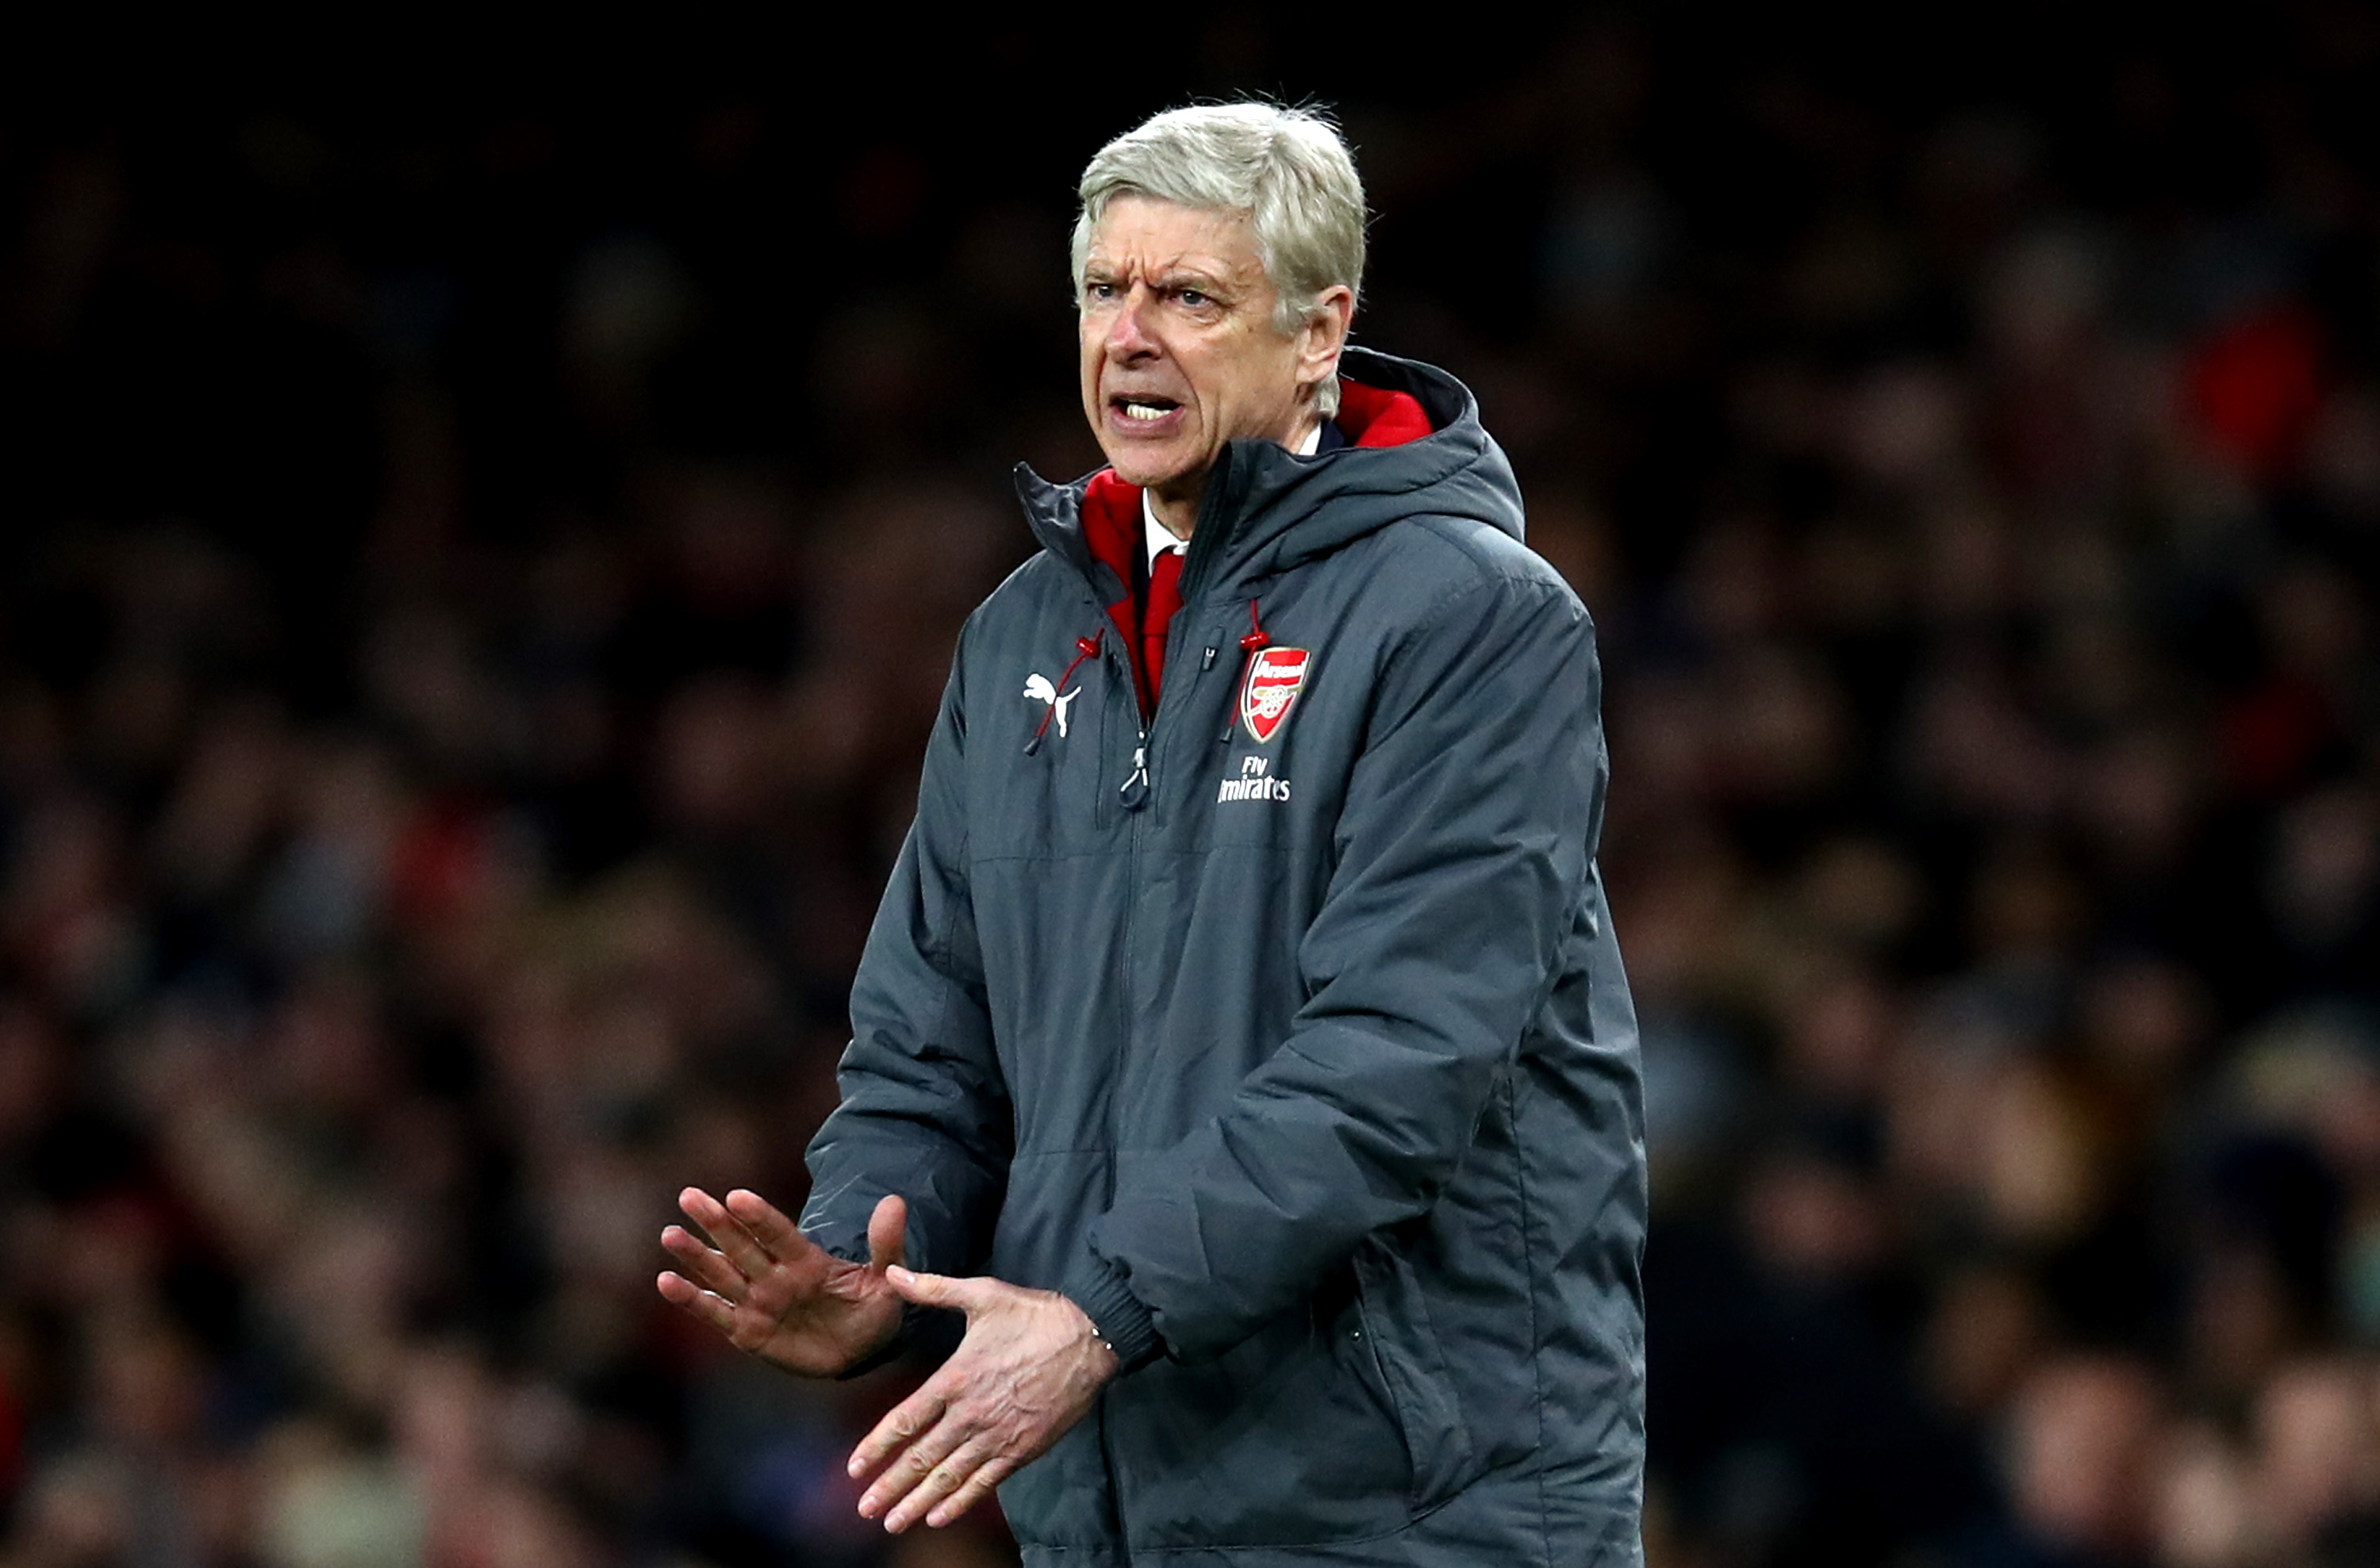 Arsenal manager Arsene Wenger claims English players are masters of diving